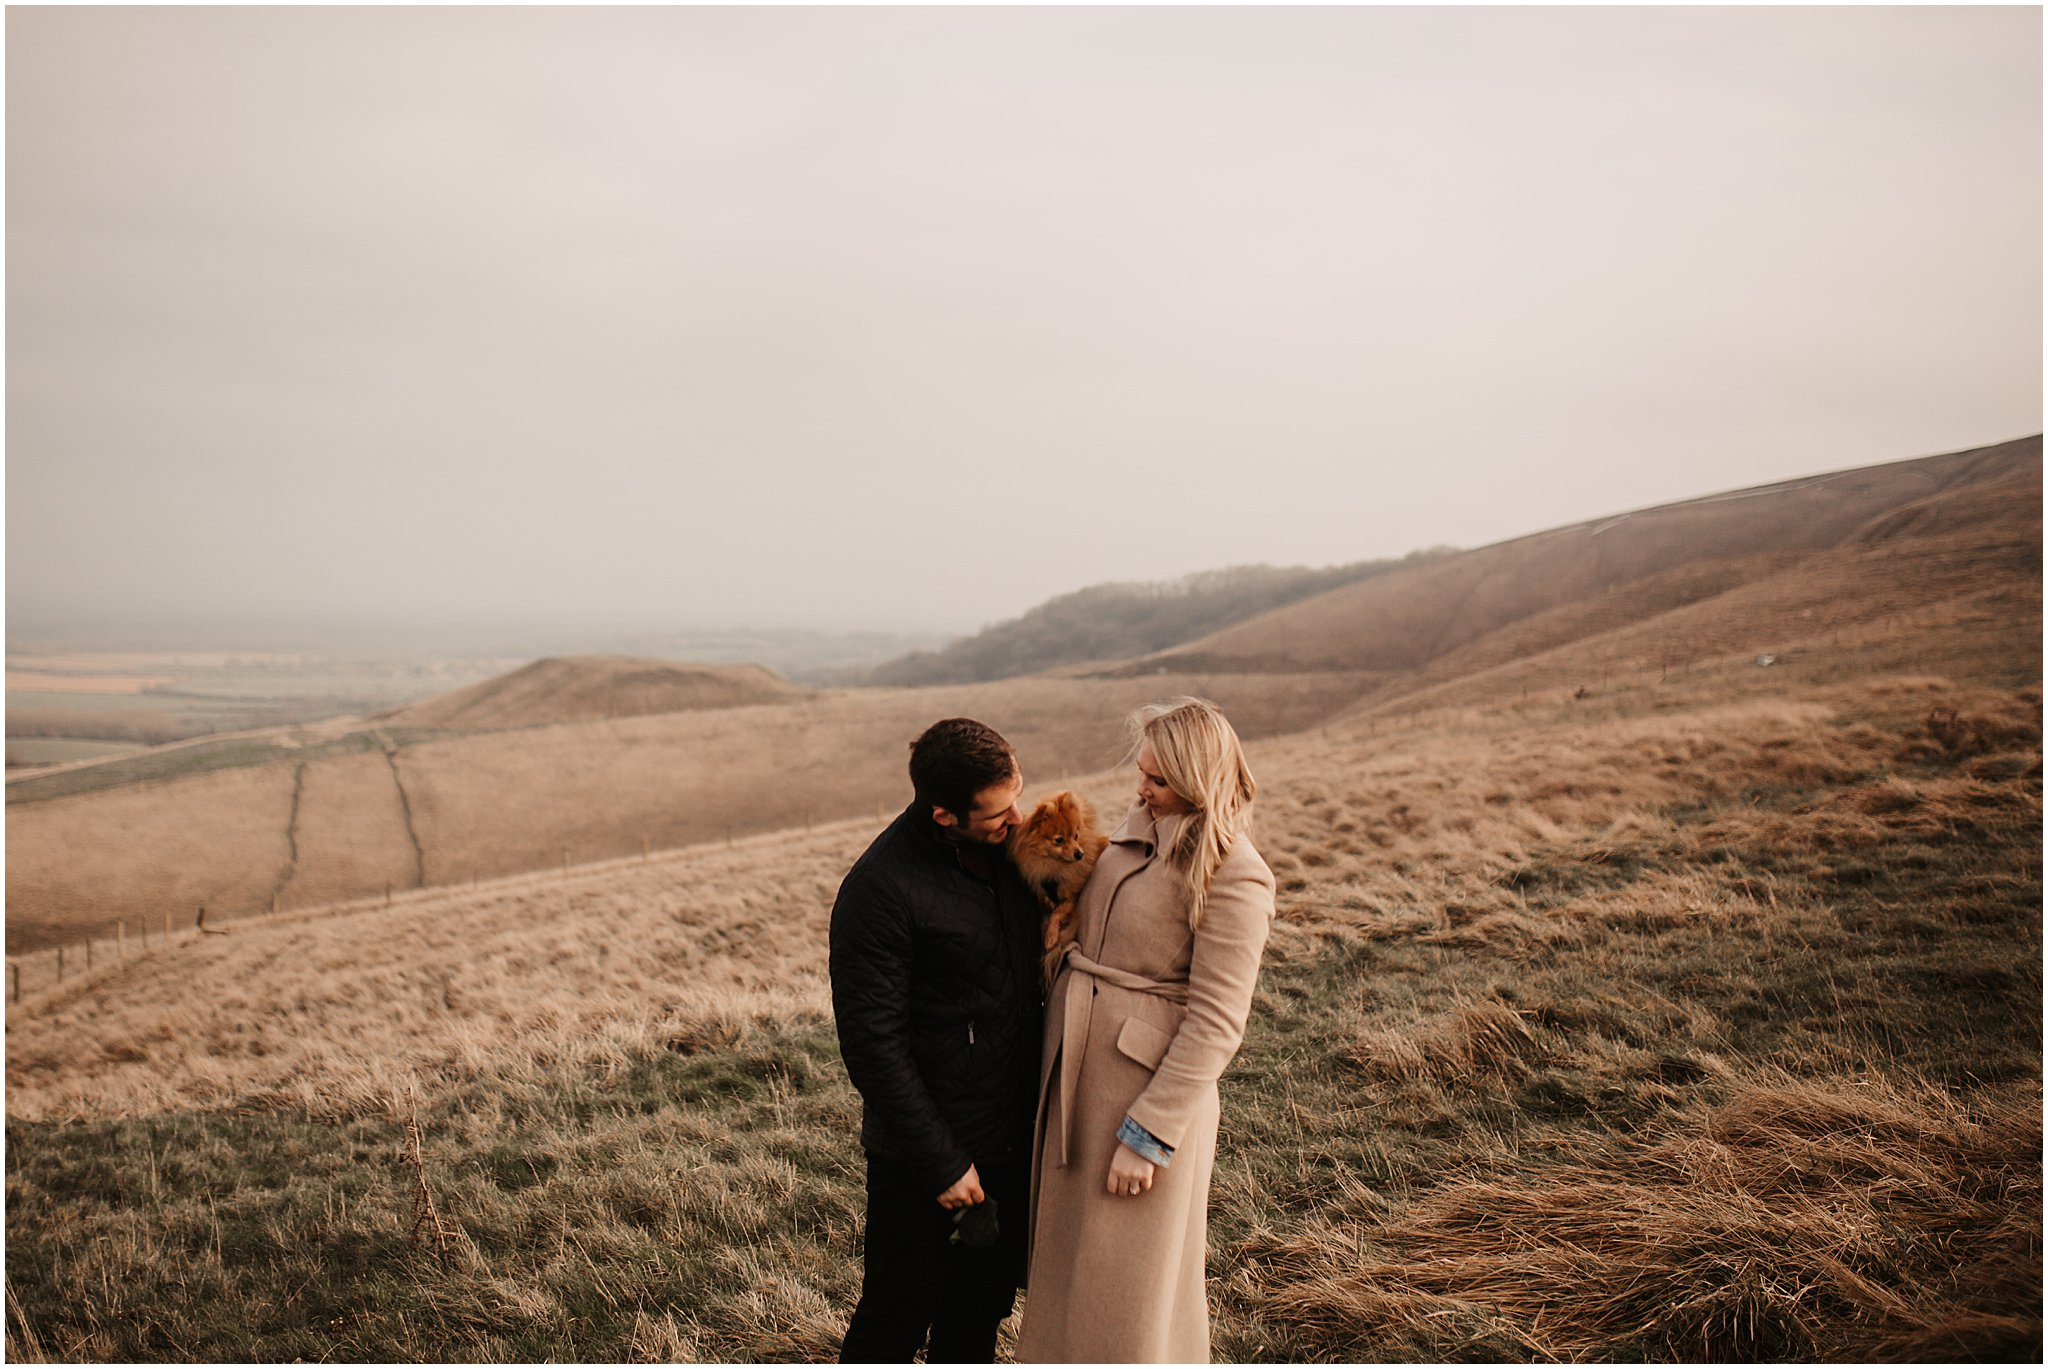 Mike & Charley_s Winter Engagement Shoot Wiltshire-160.jpg